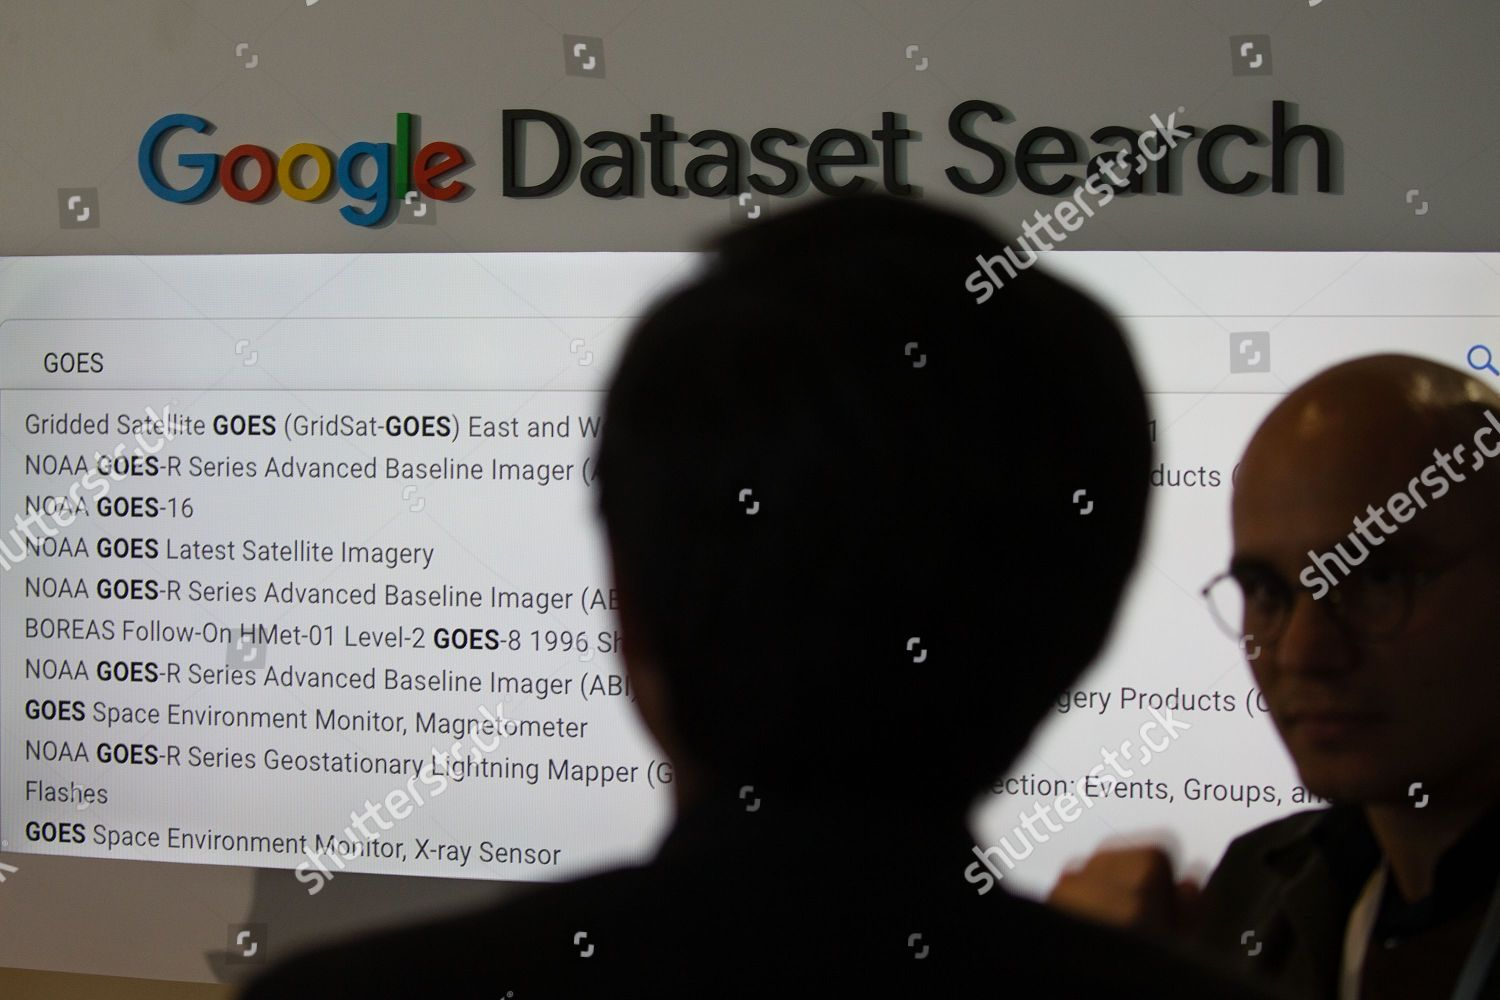 display shows different searchable Google datasets that